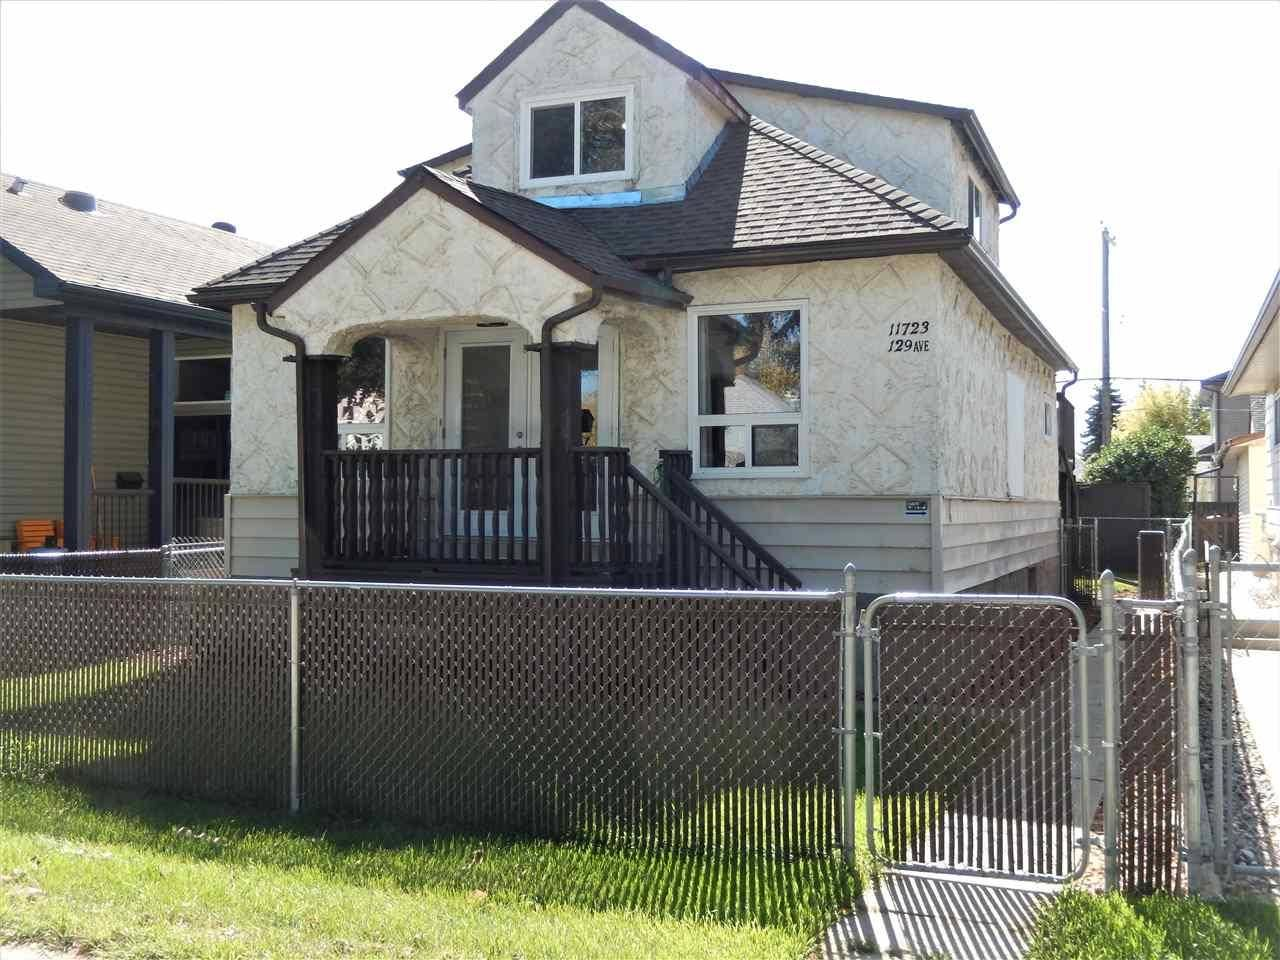 House for sale at 11723 129 Ave Nw Edmonton Alberta - MLS: E4172823